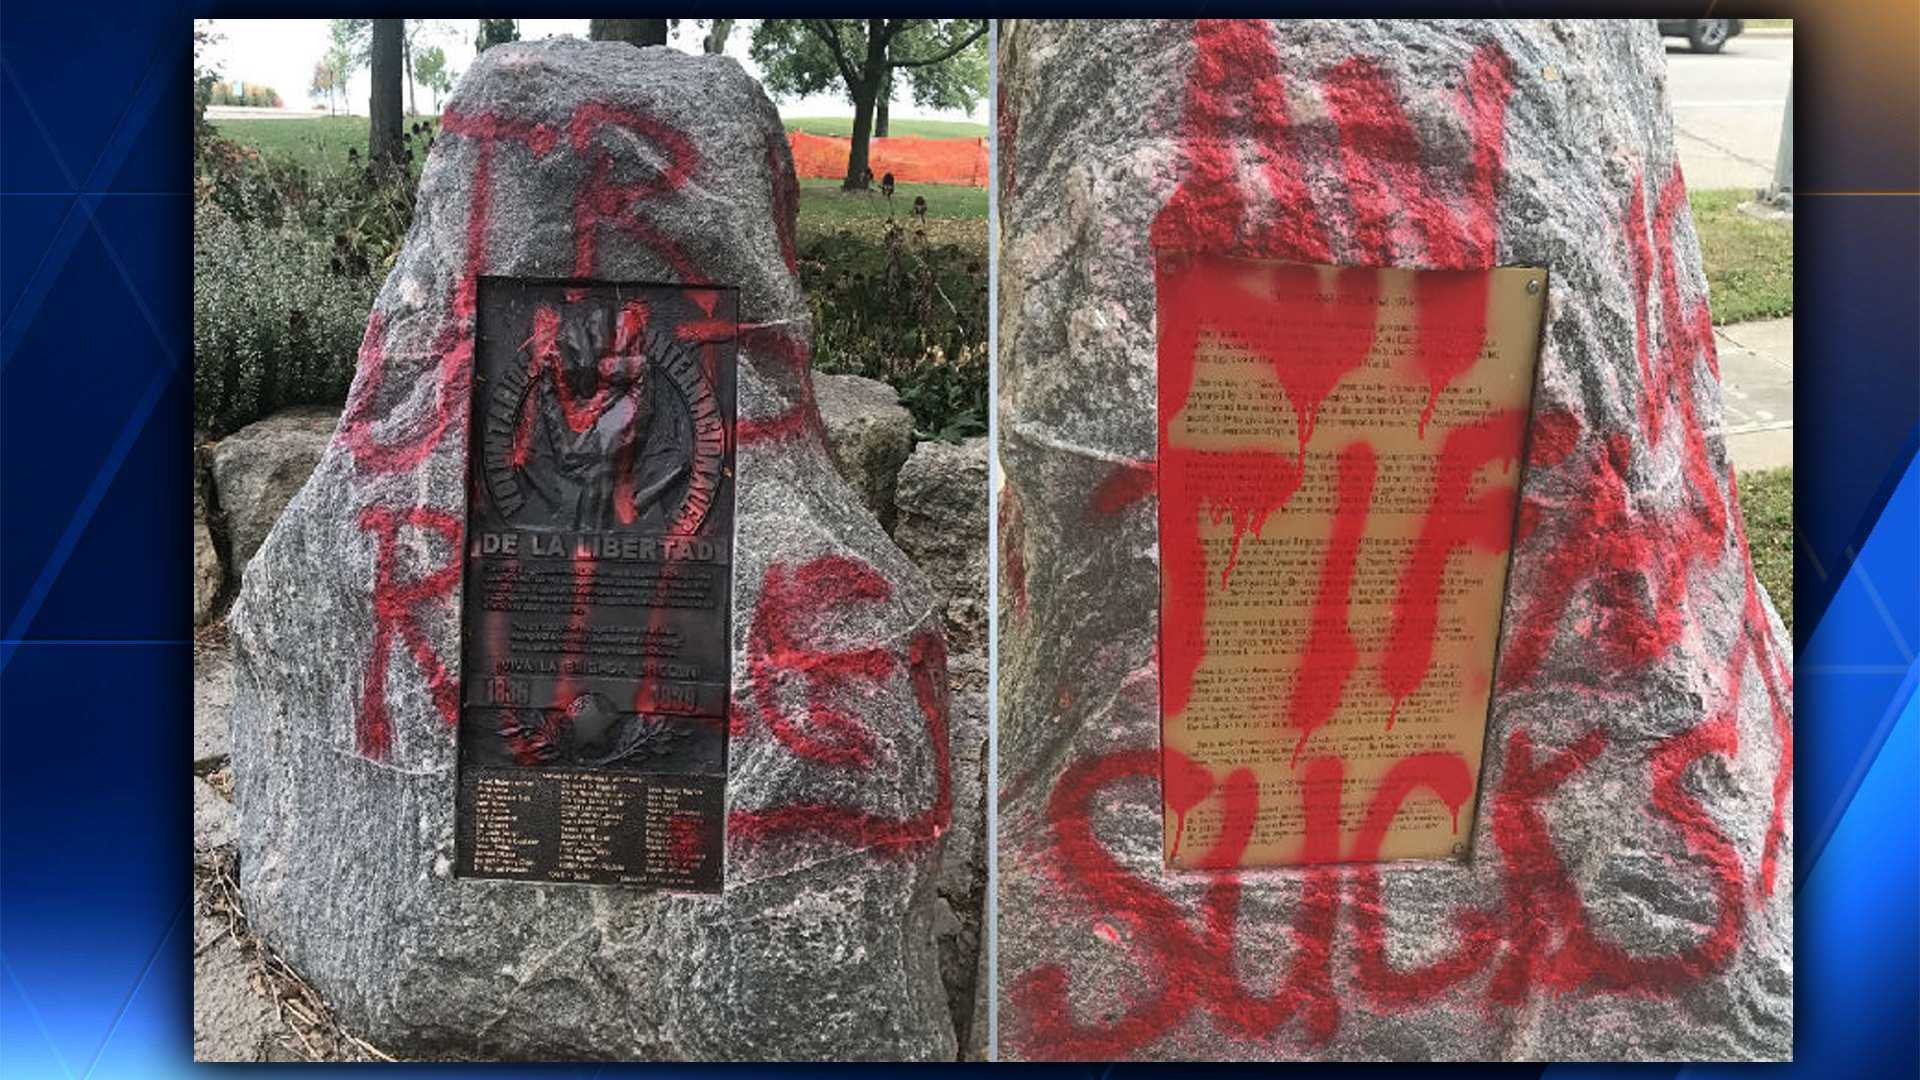 Police investigate graffiti at James Madison Park